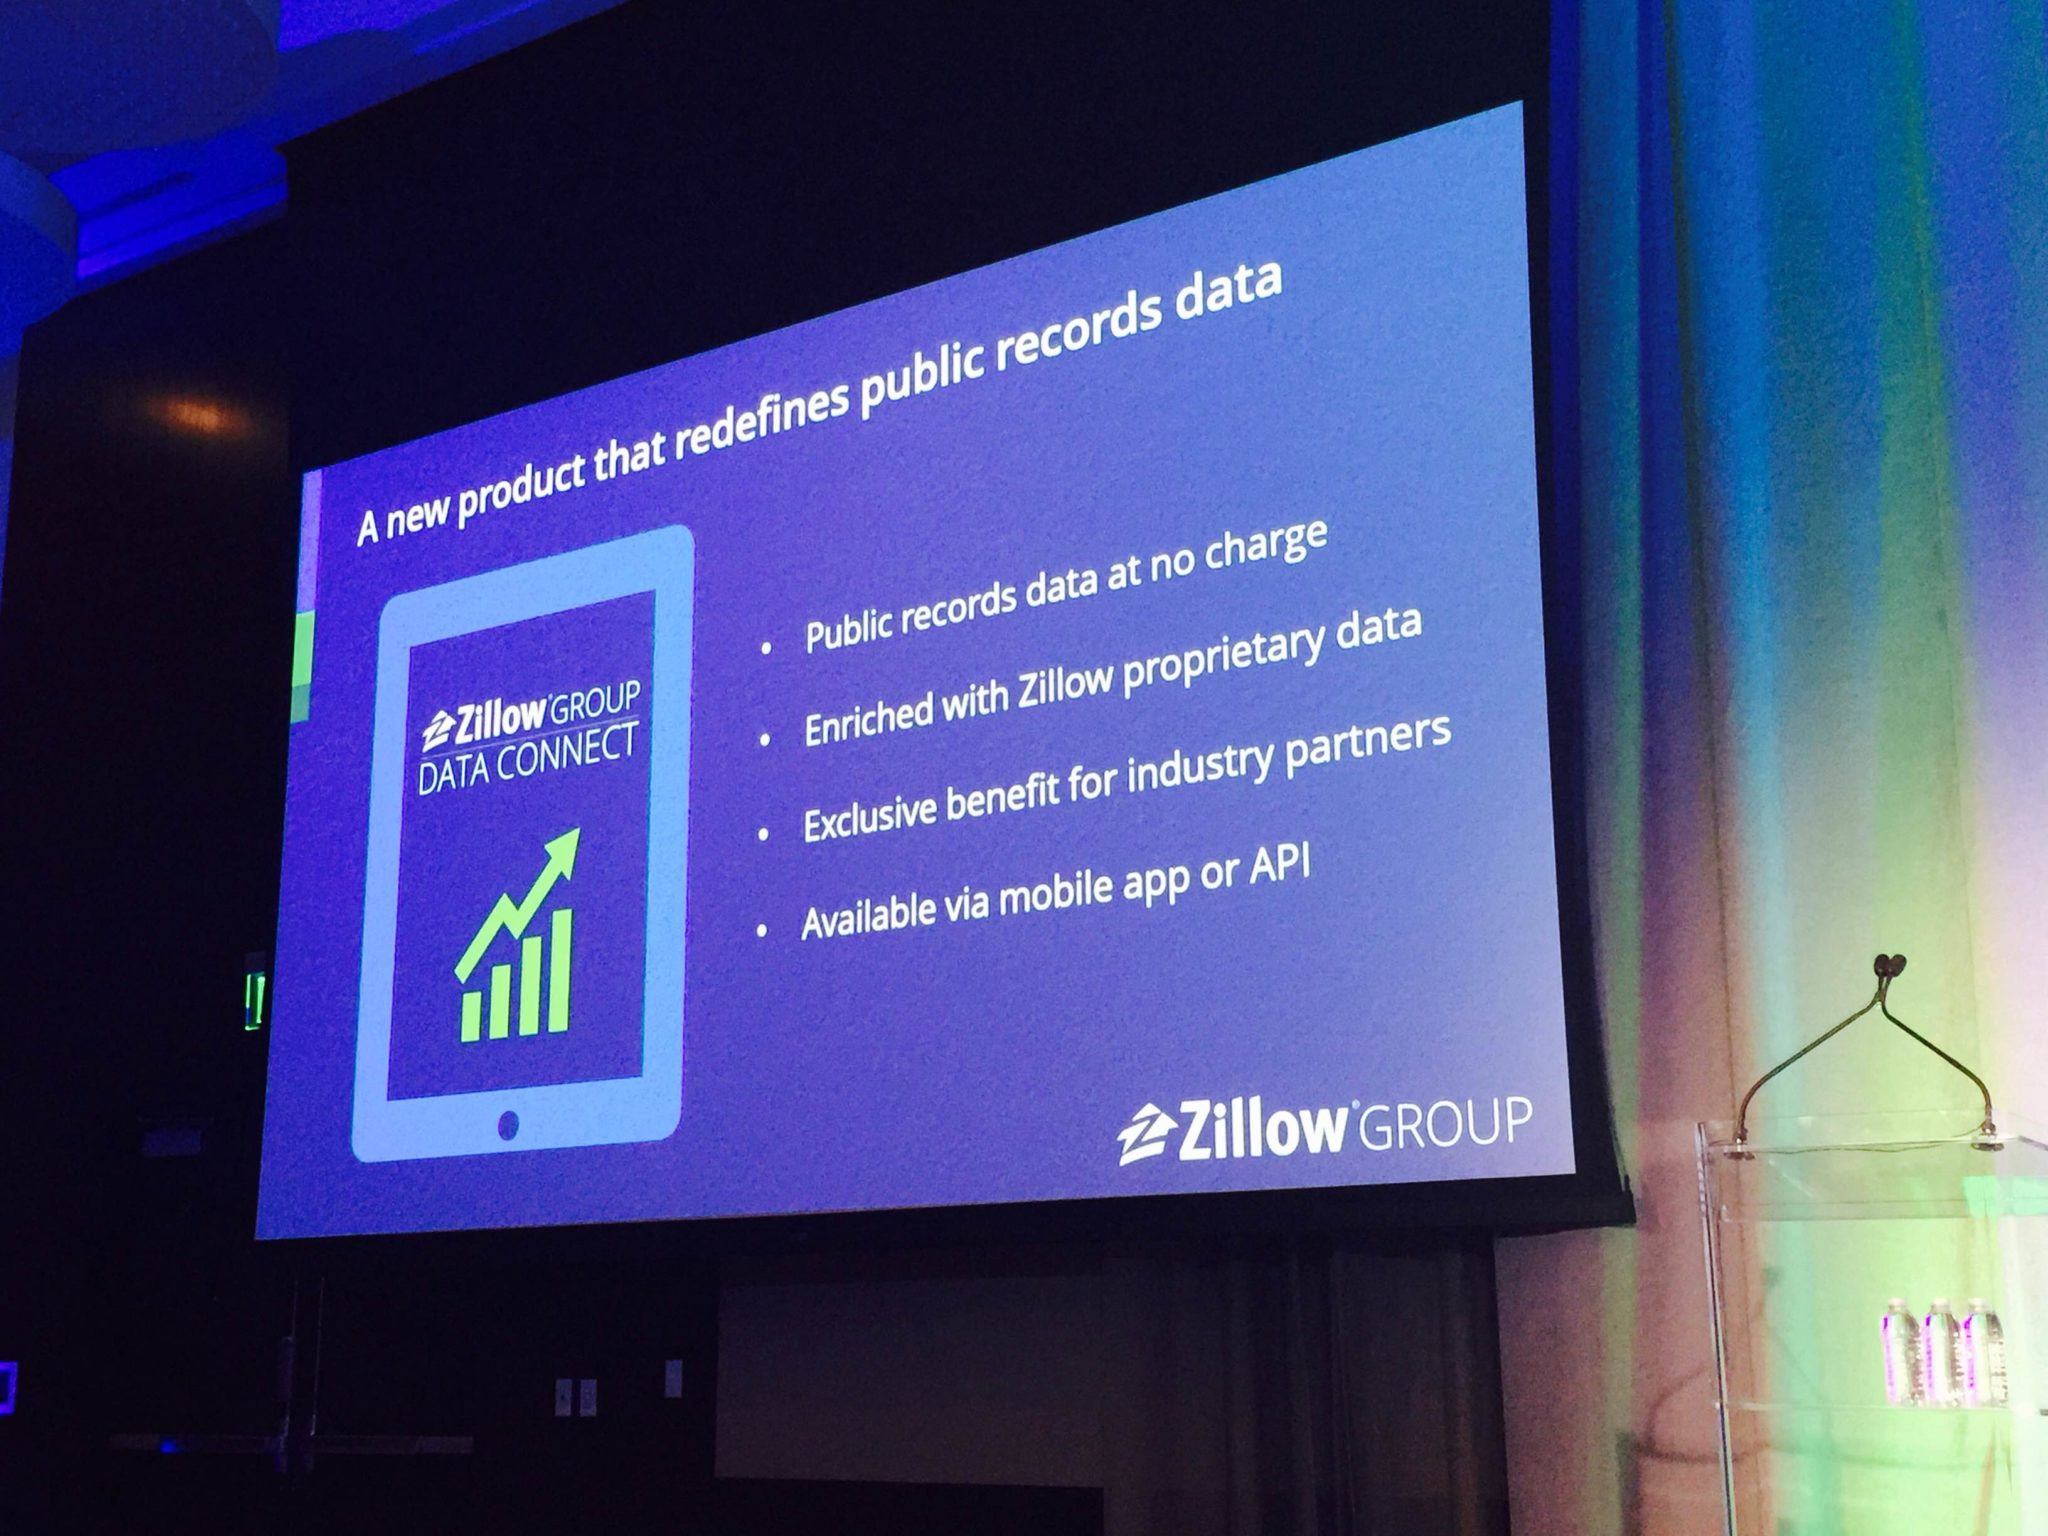 Zillow Group Data Connect announced at Zillow MLS Forum in Las Vegas